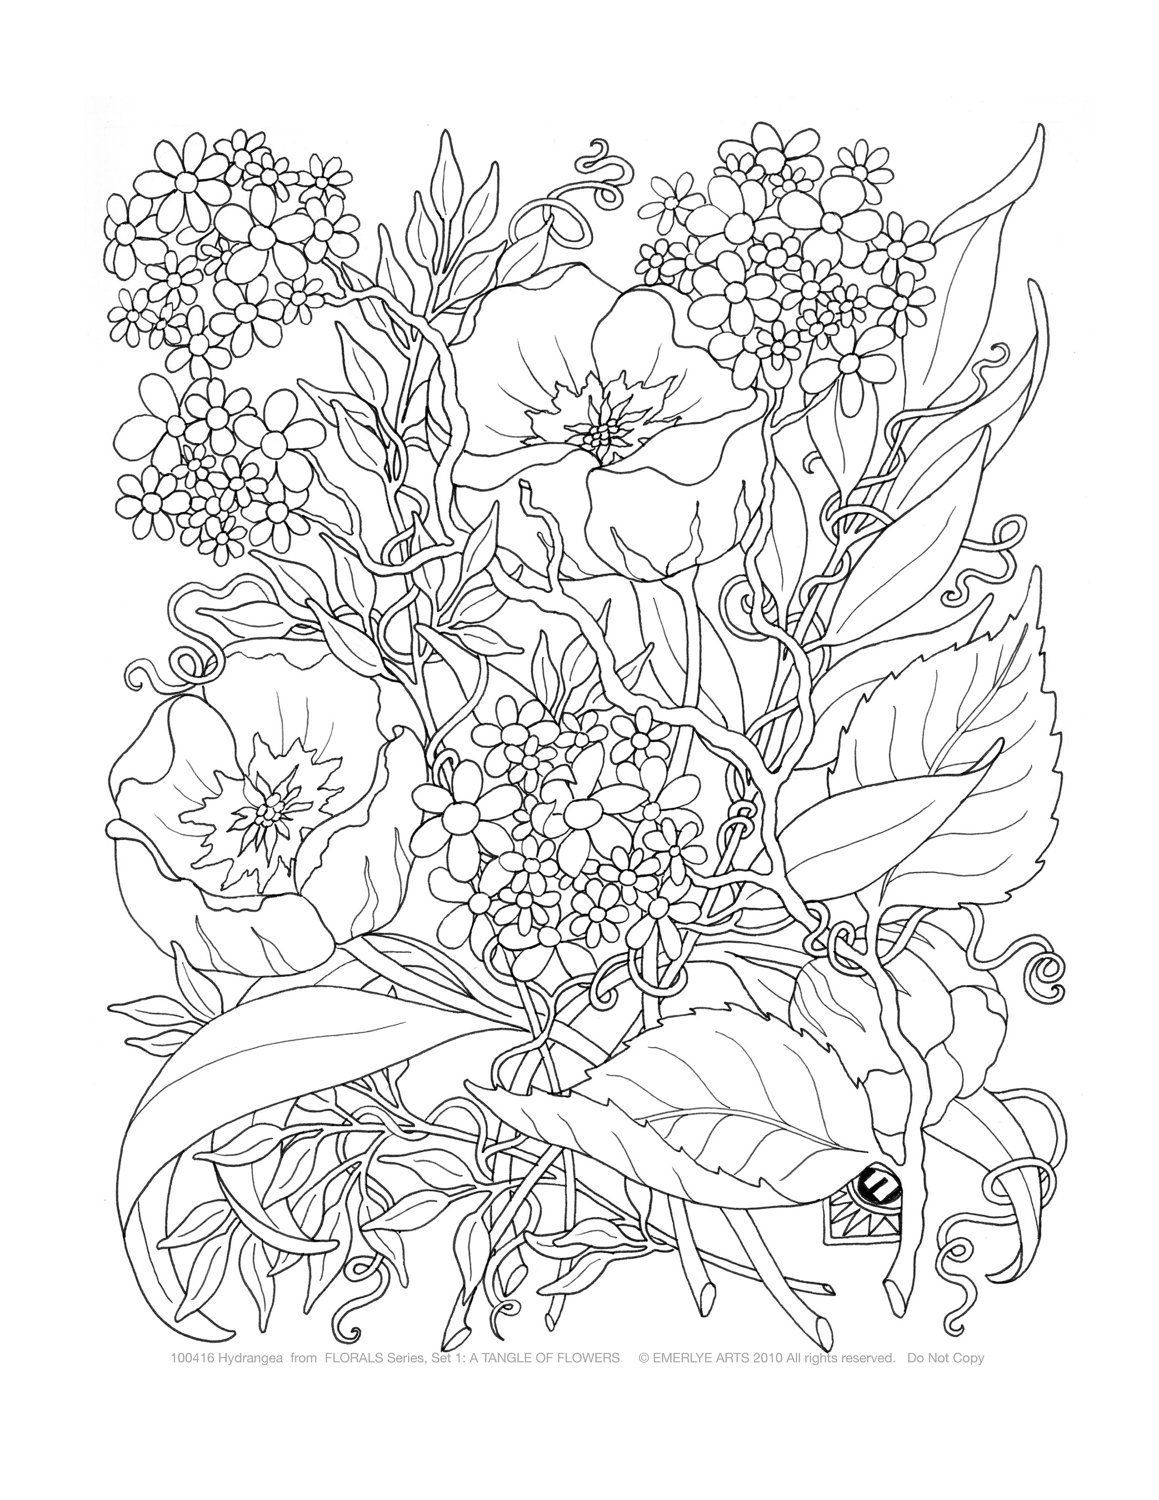 Coloring Pages for Adults - Free Large Images | раскраска ...